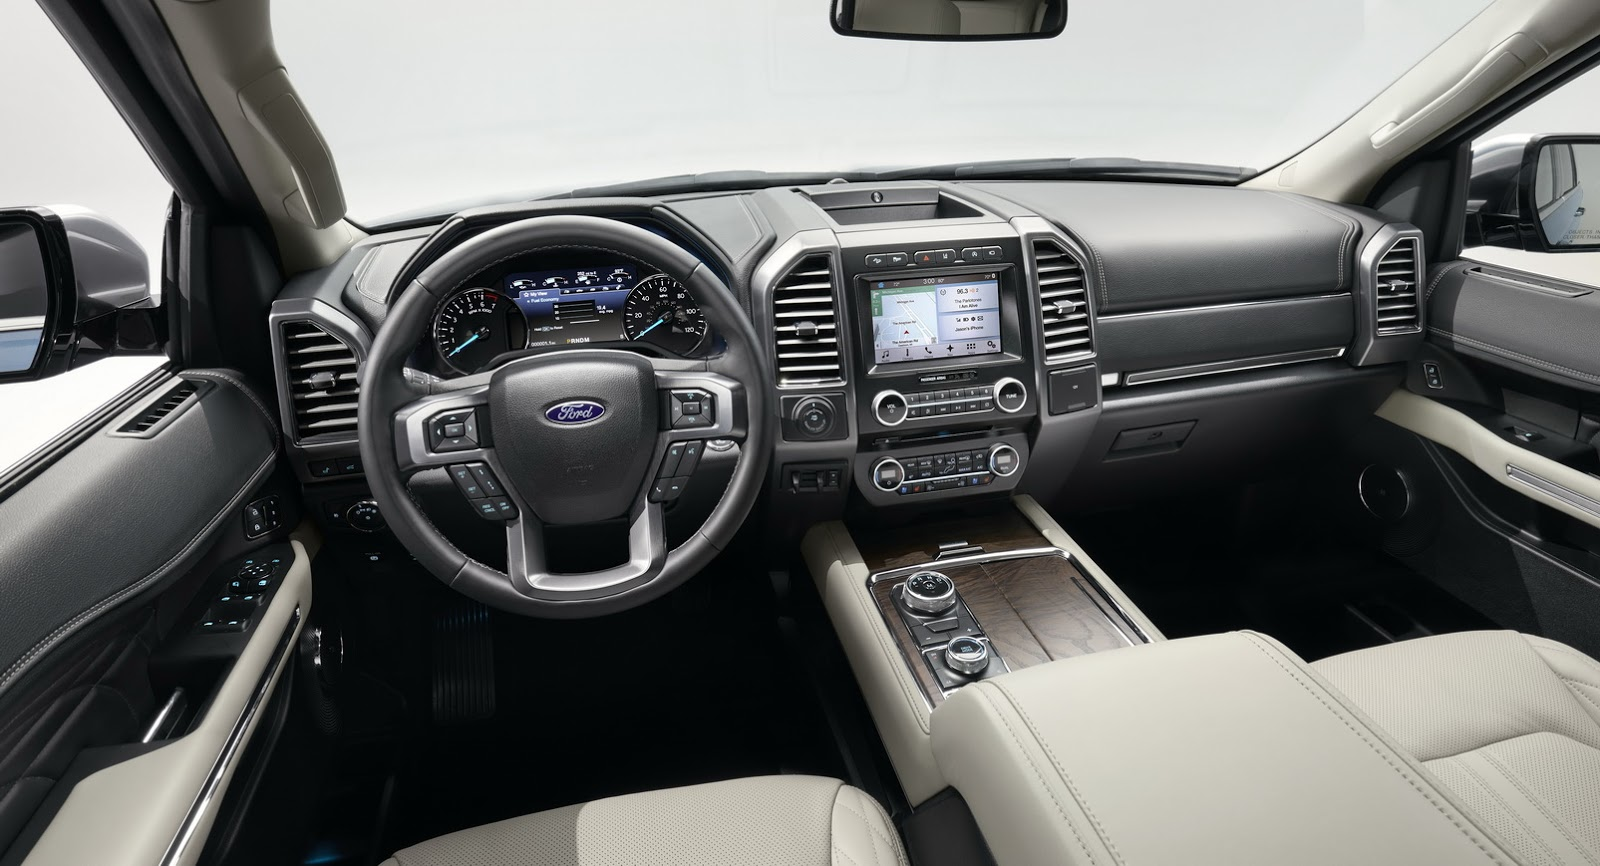 Nhtsa Investigates Ford Over An Older Power Steering